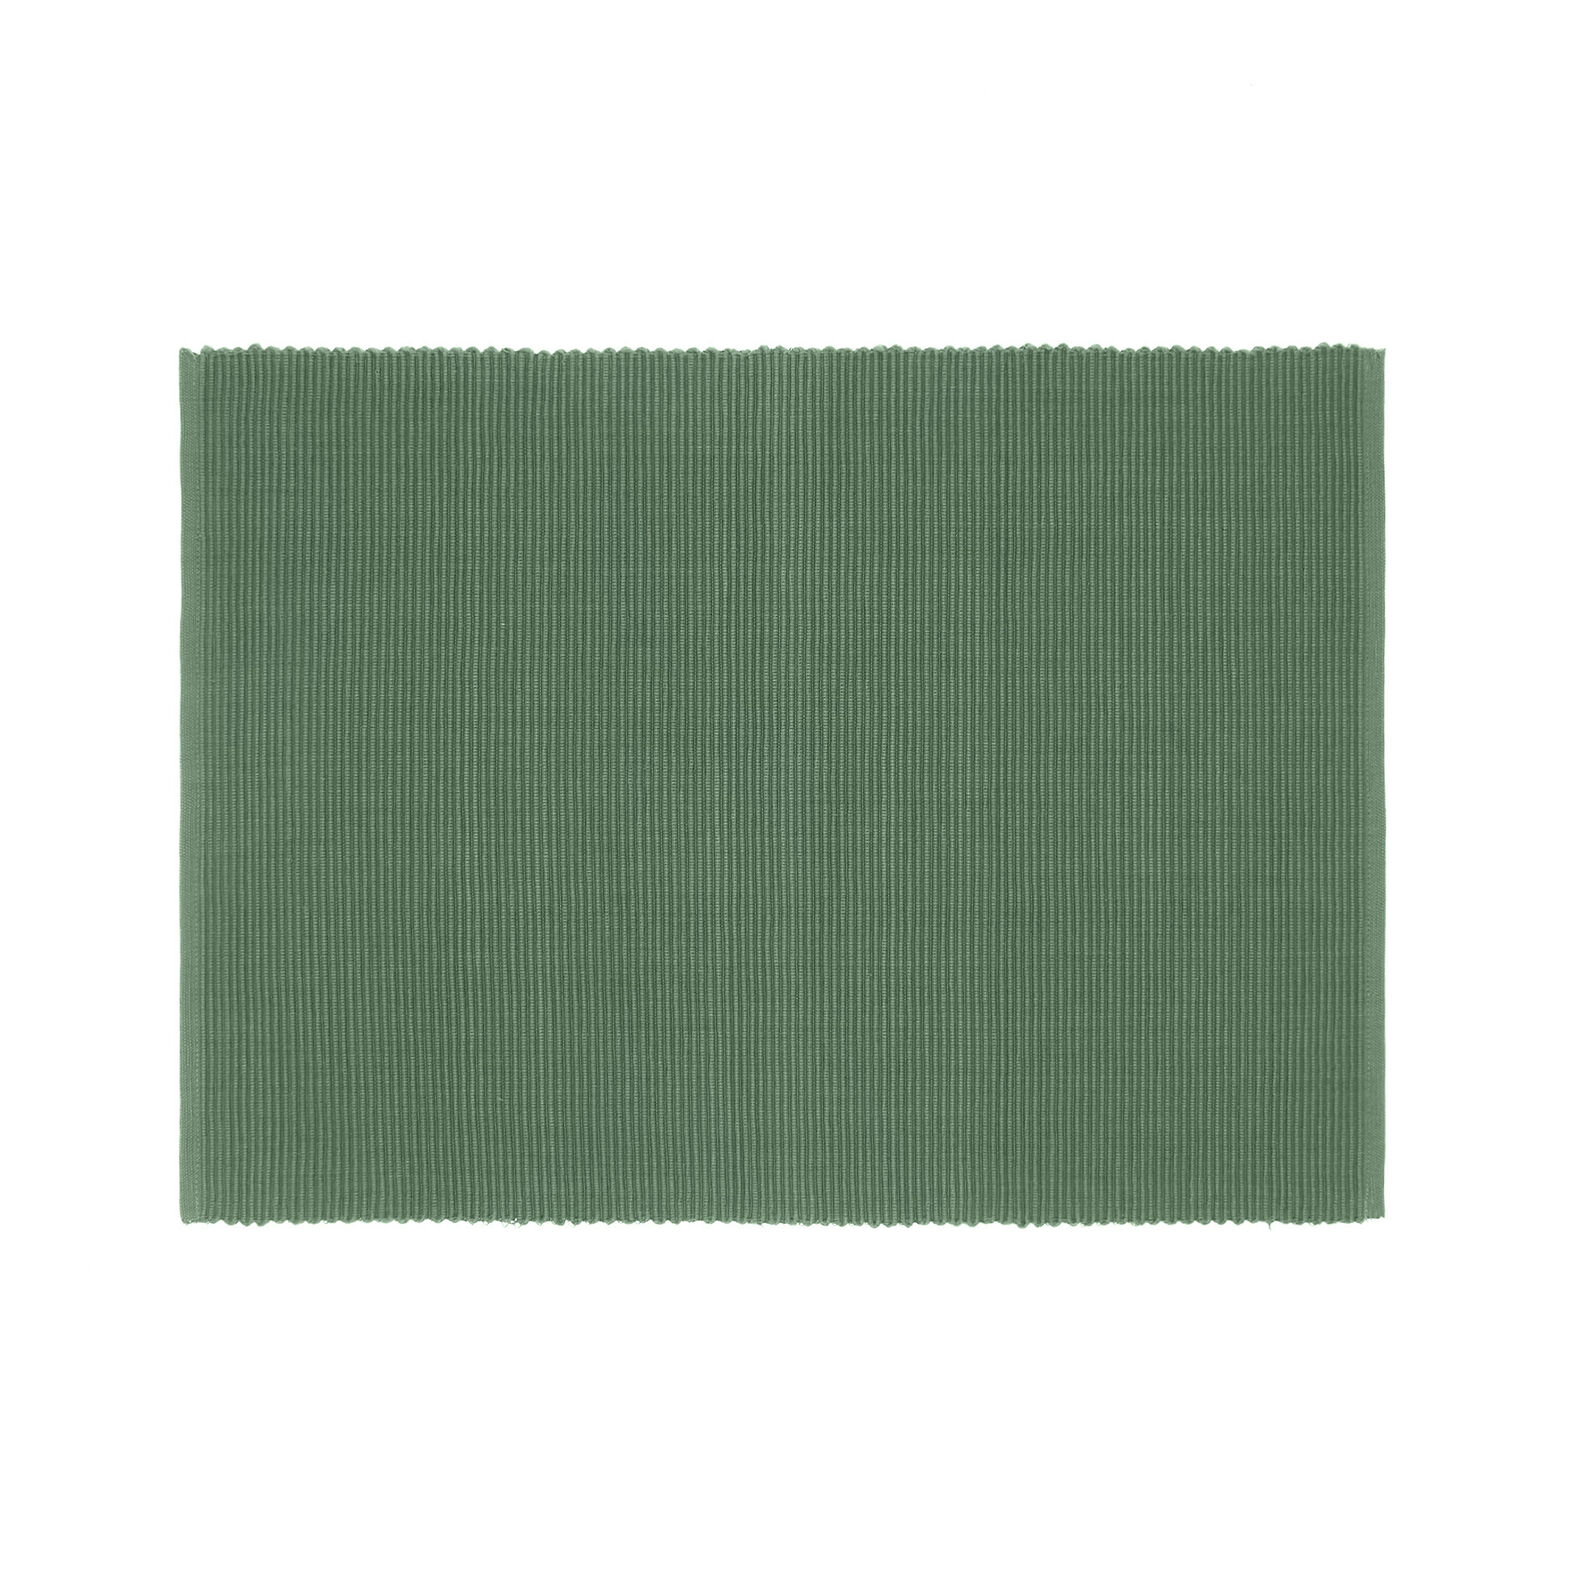 Solid colour table mat in 100% cotton